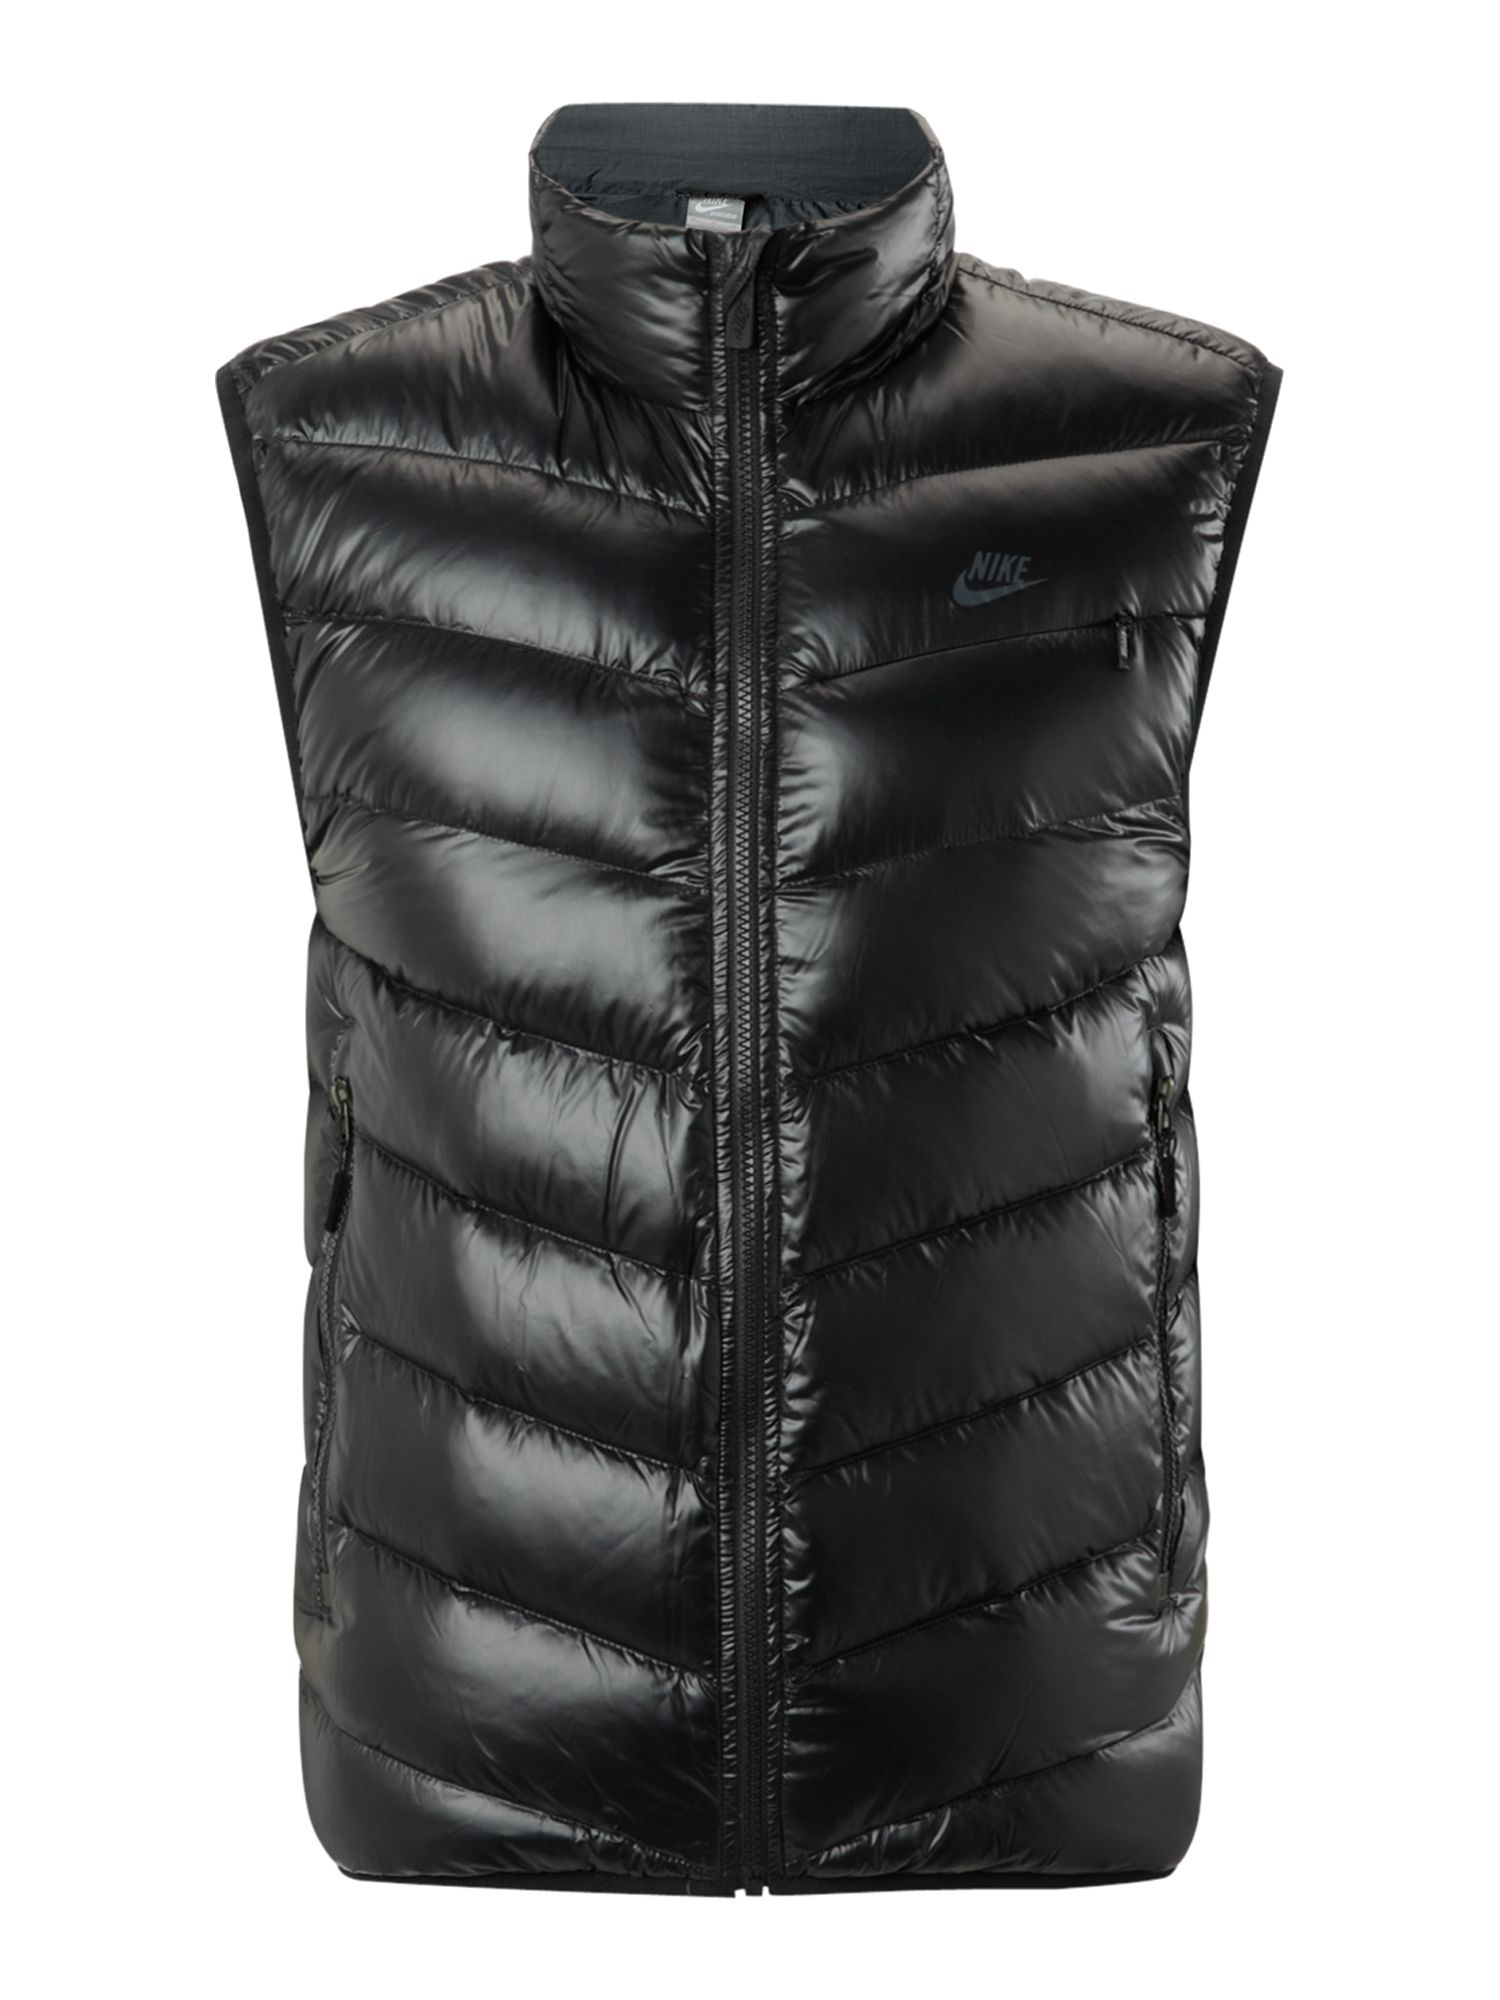 Two pocket gilet